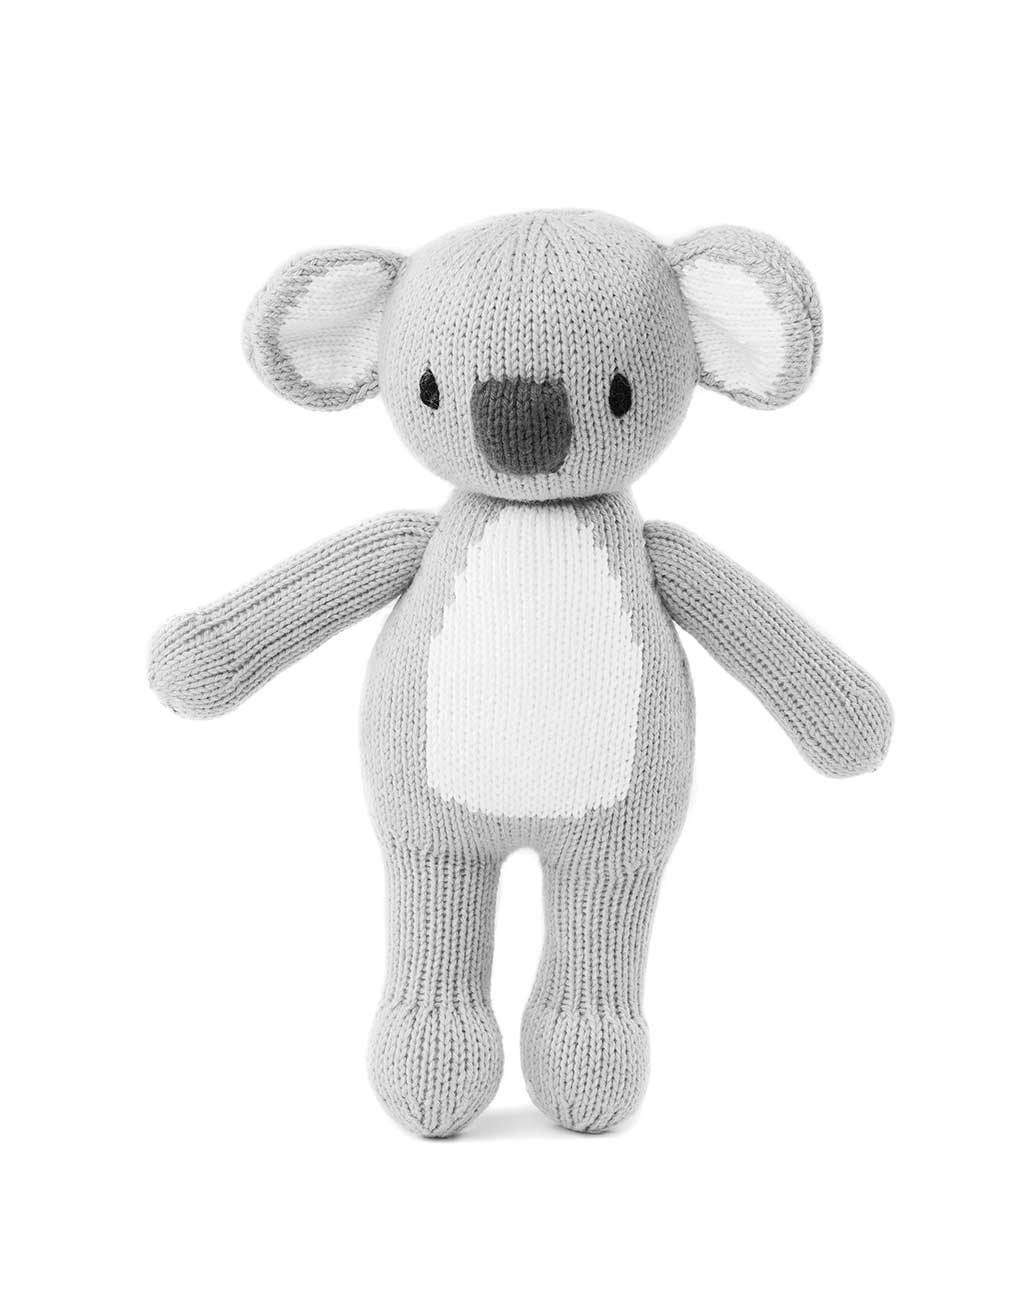 Koala Stuffed Animal | The Little Market